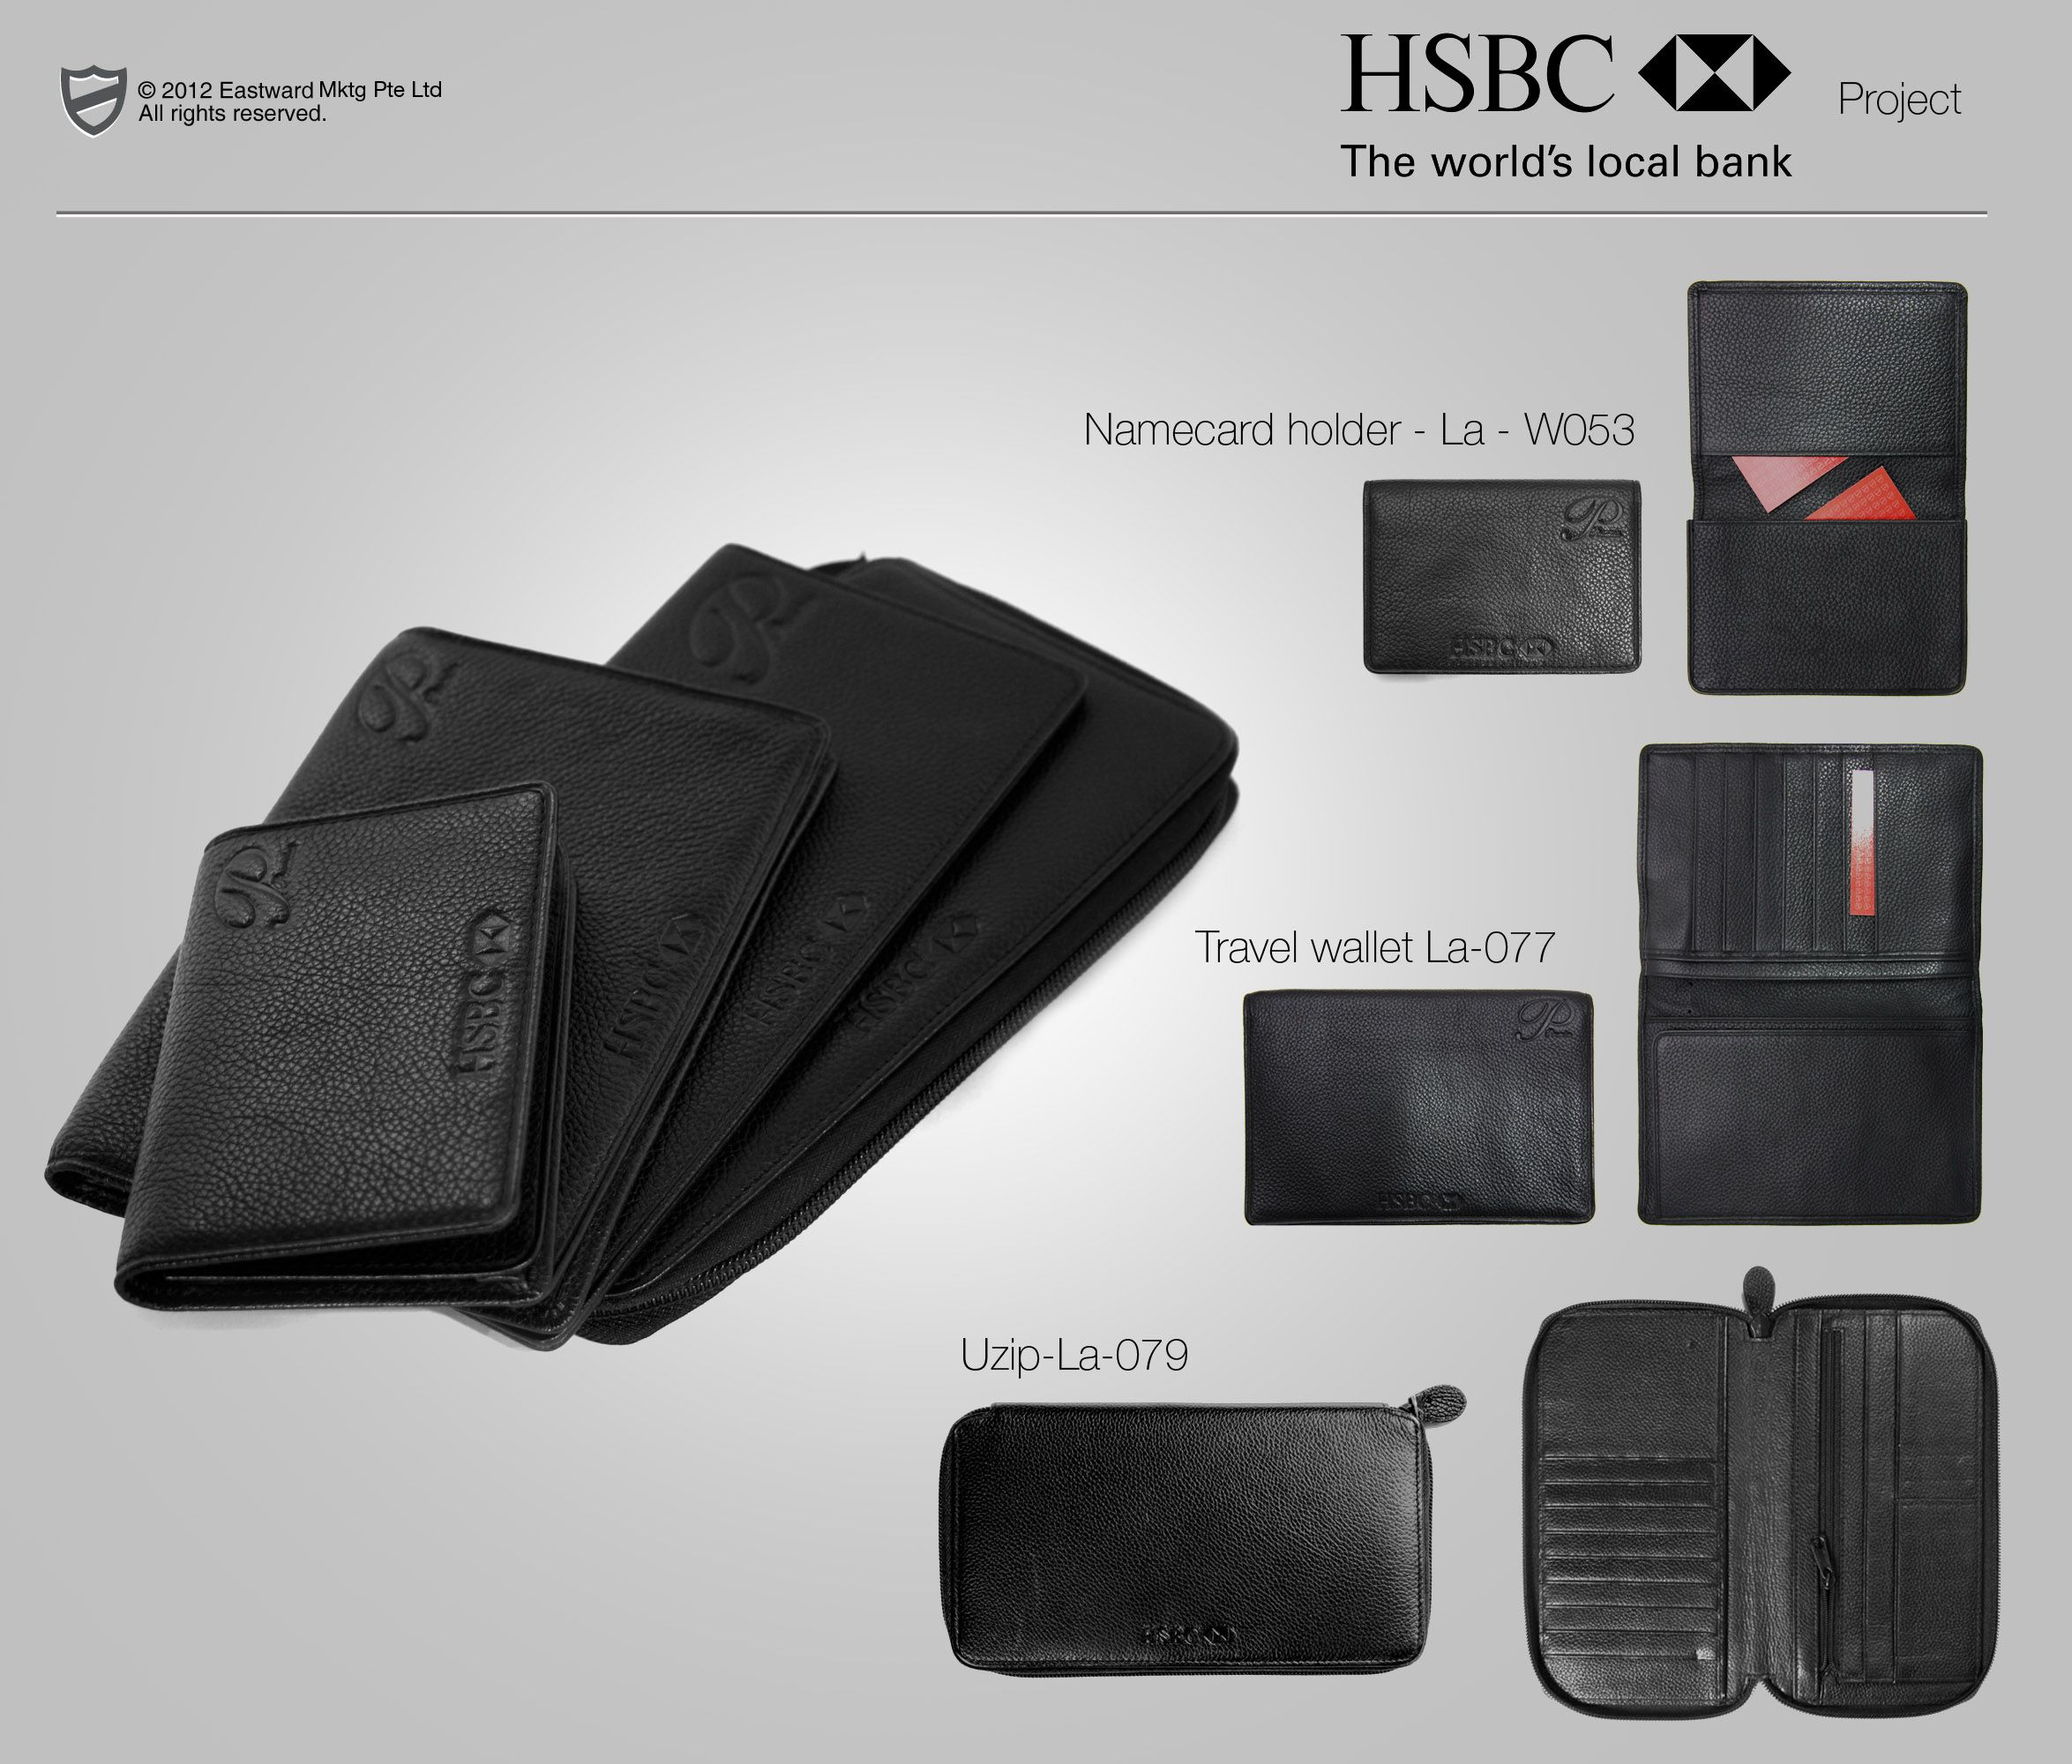 HSBC premier banking leather gifts | Past Projects Reference